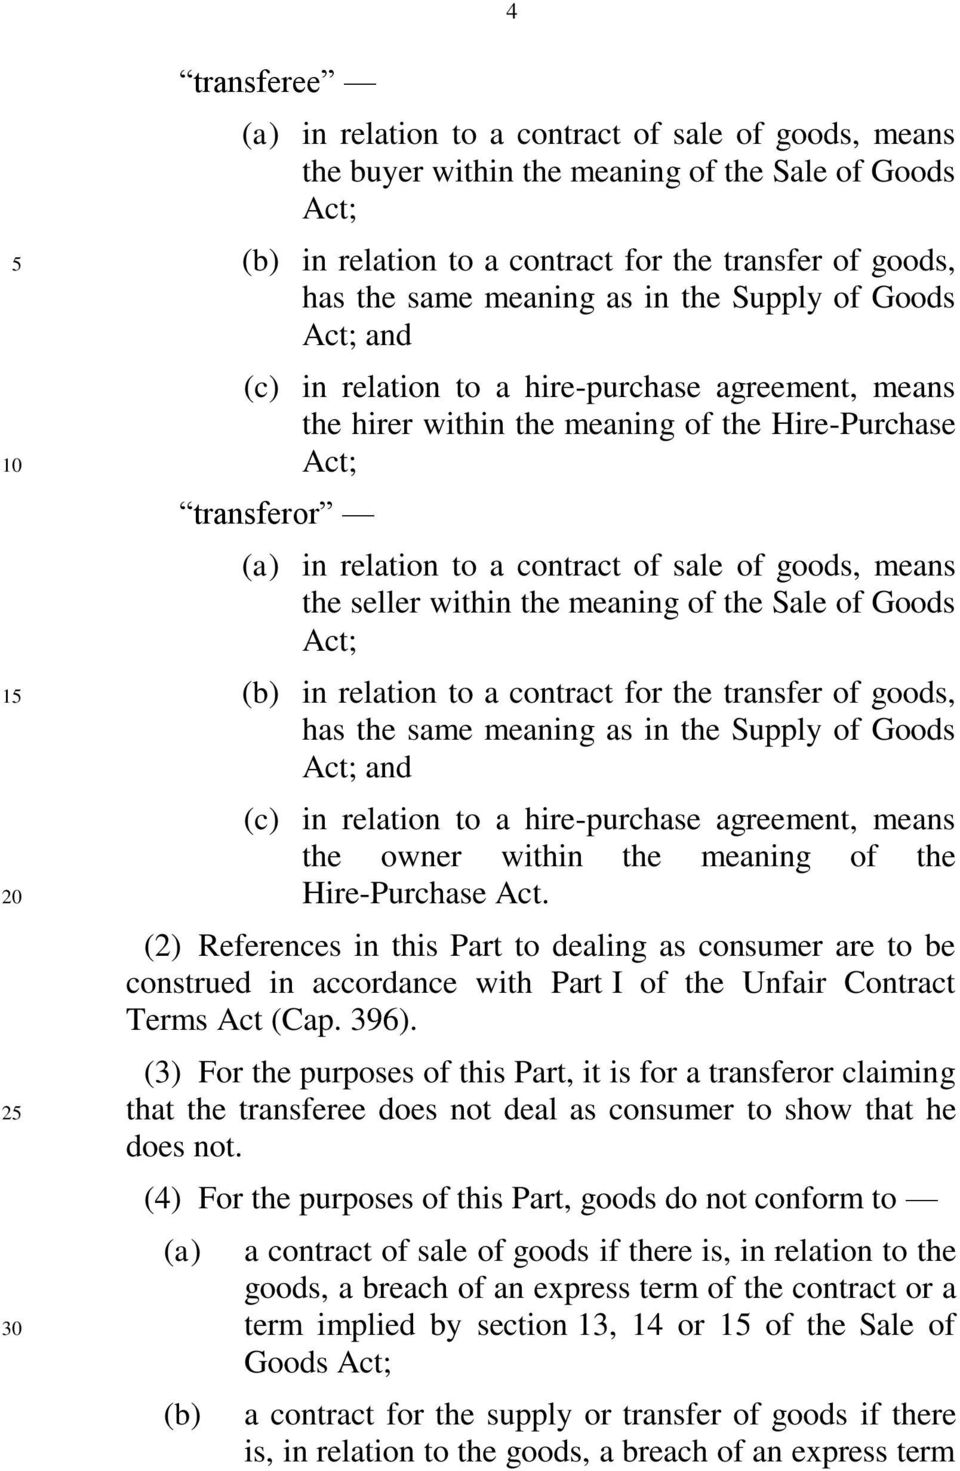 of goods, means the seller within the meaning of the Sale of Goods Act; in relation to a contract for the transfer of goods, has the same meaning as in the Supply of Goods Act; and (c) in relation to